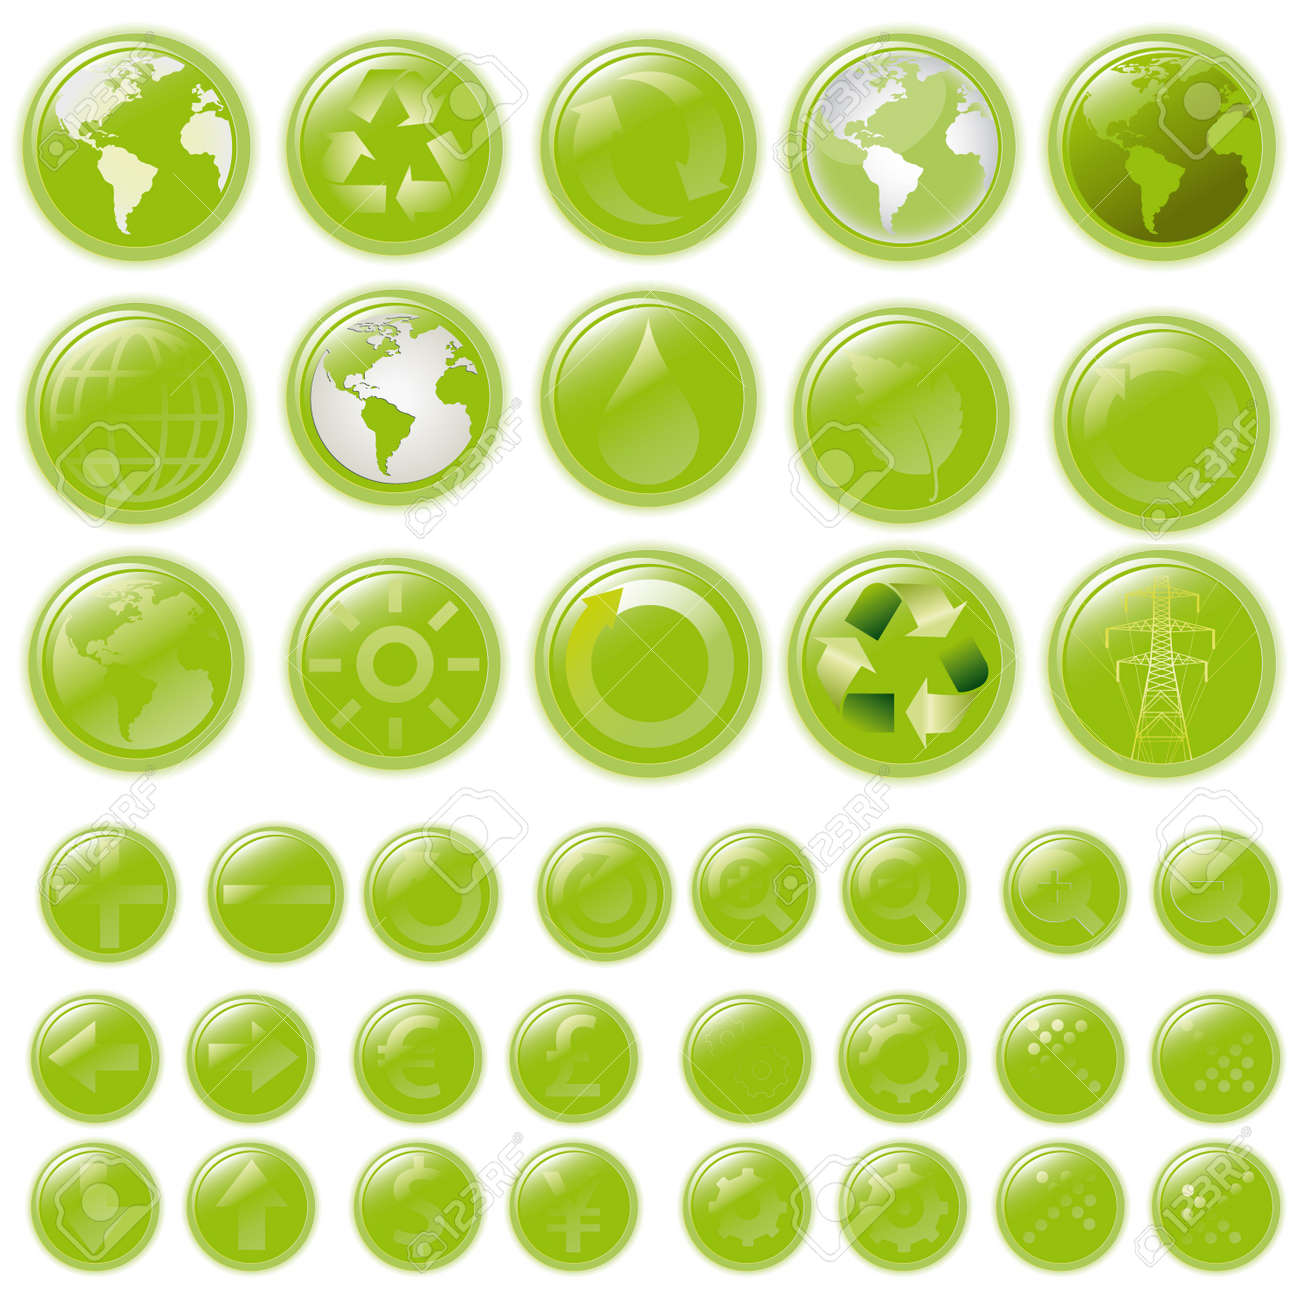 green buttons - aqua-style glossy buttons, blank and with 39 icons Stock Photo - 8716707